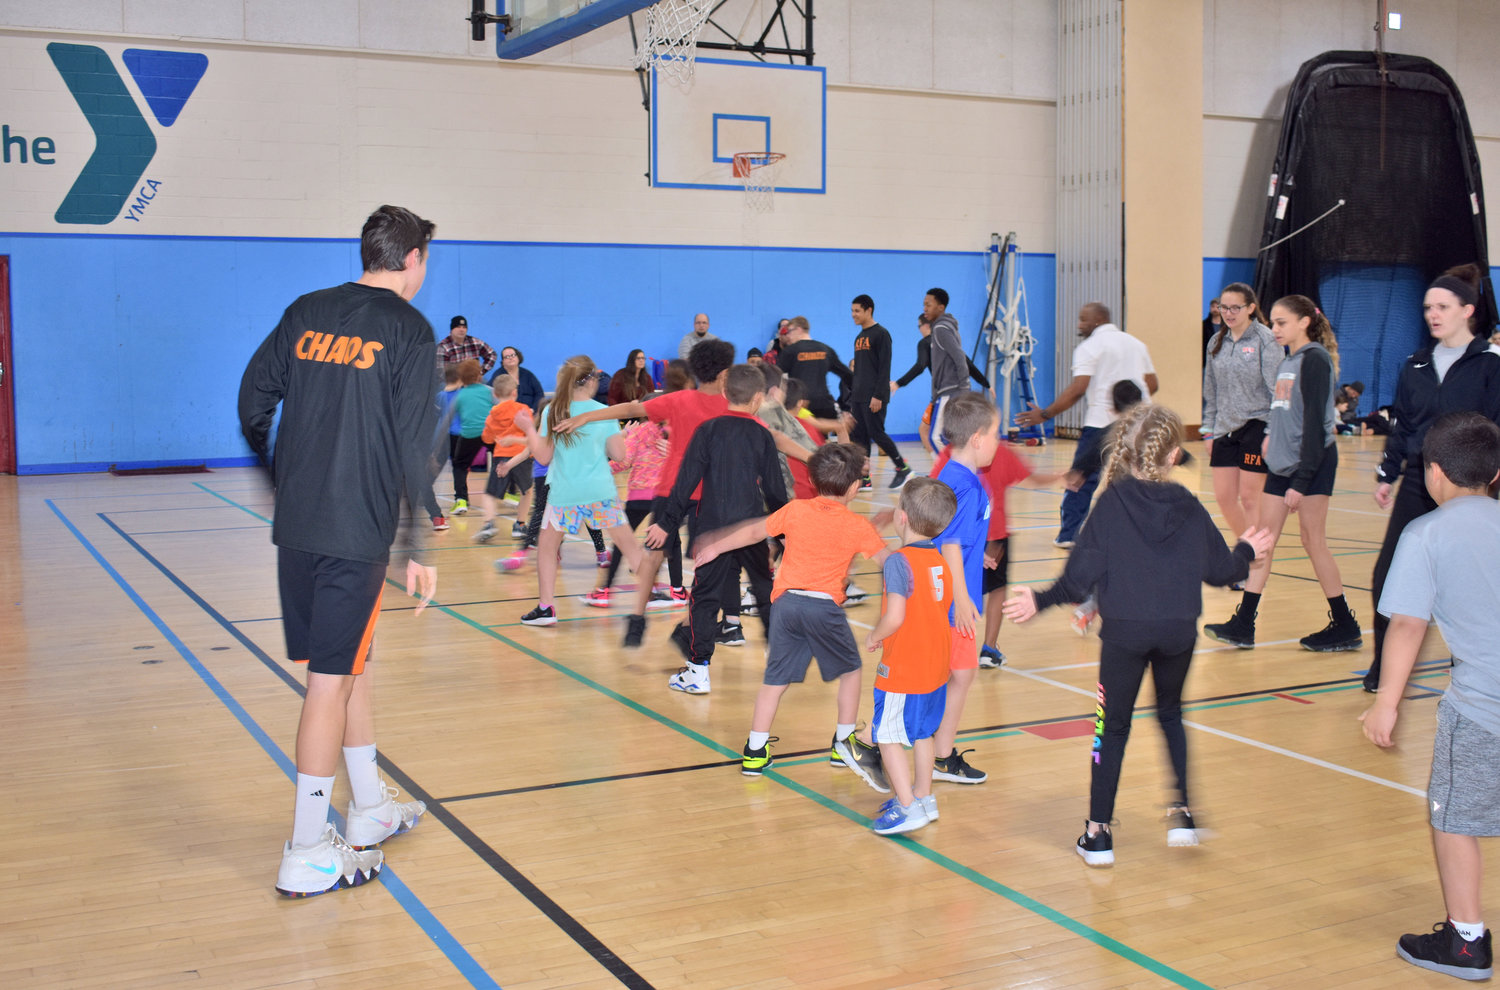 TEACHING AND LEARNING — Members of the Rome Free Academy boys and girls varsity  basketball teams help instruct youth in grades kindergarten through second during a recent learn to play basketball clinic session.